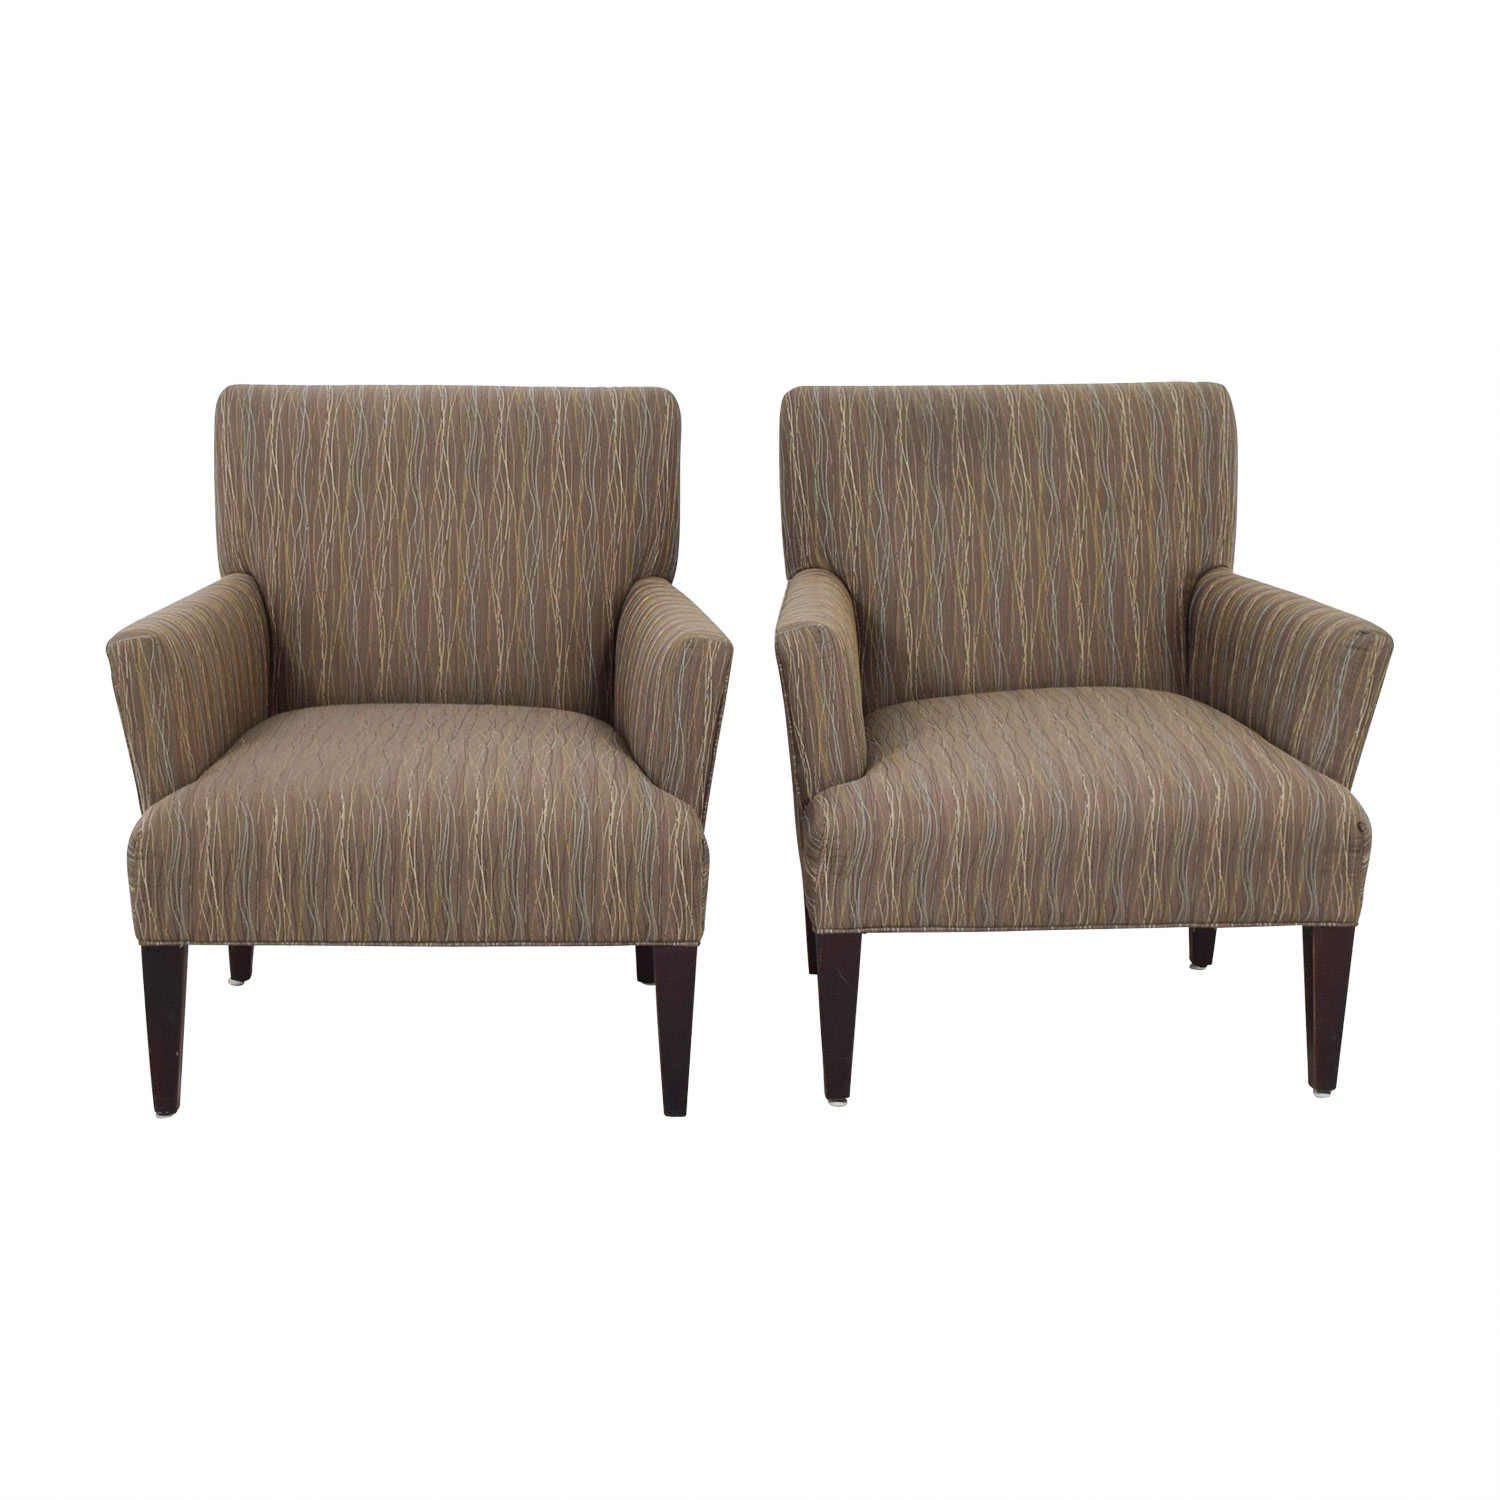 shop Room & Board Multi-Colored Patterned Armchairs Room & Board Accent Chairs